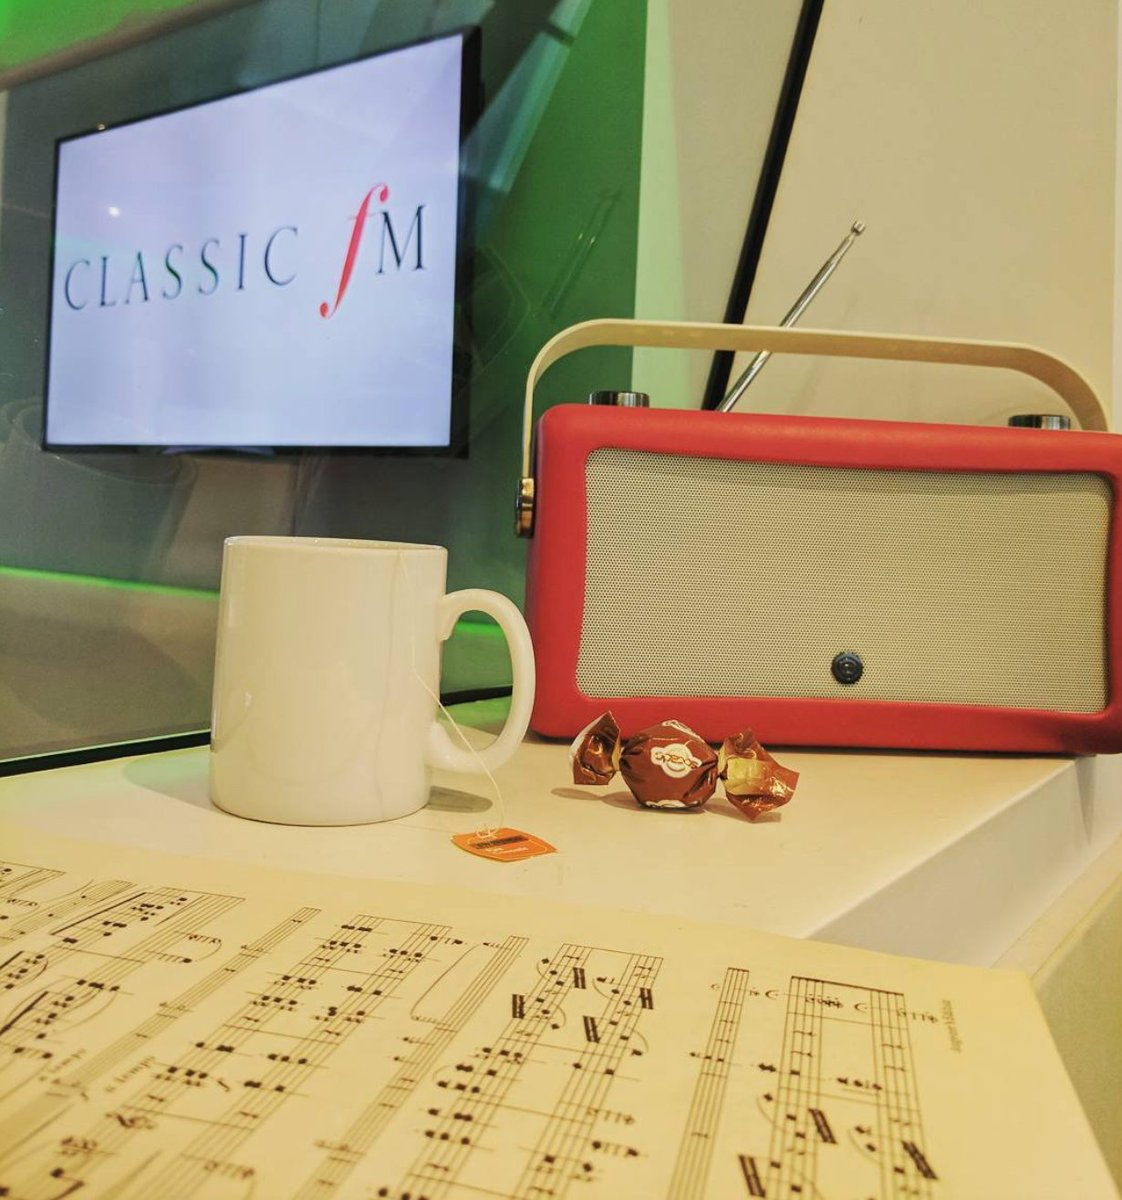 Spend your Friday afternoon lunch break in the company of the worlds finest classical pieces, handpicked by you. Join @realaled from 12pm to 2pm for Classic FM Requests.